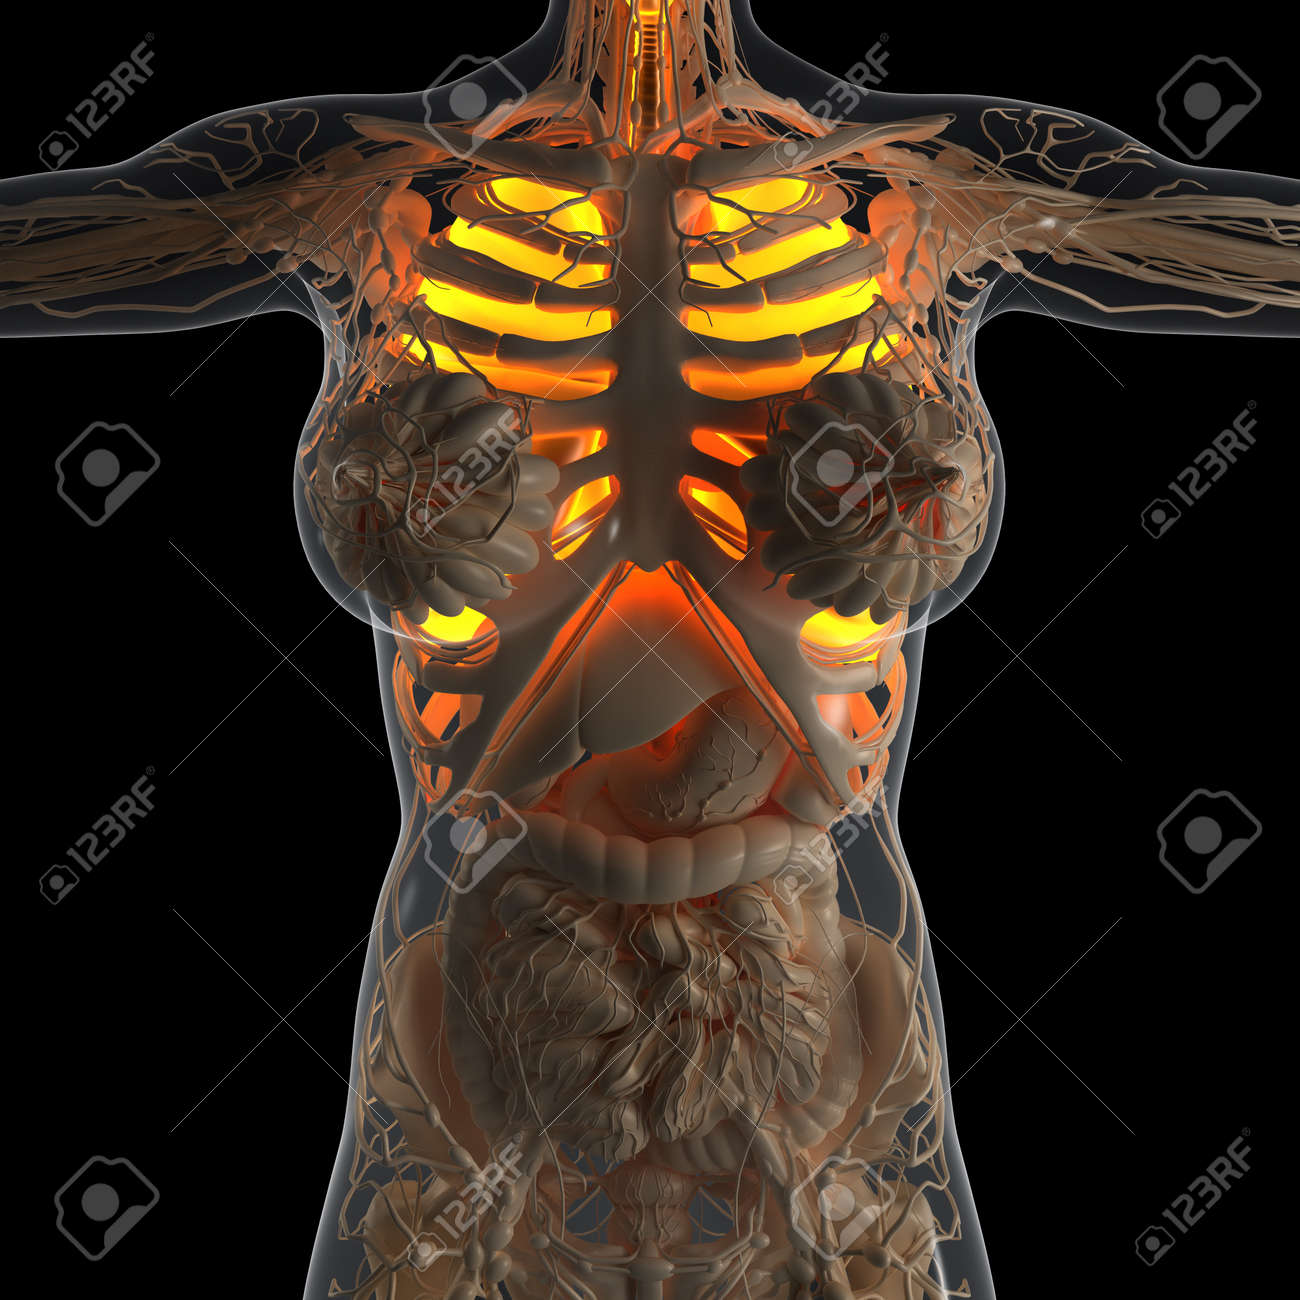 Science Anatomy Of Woman Body With Glow Lungs Stock Photo, Picture ...